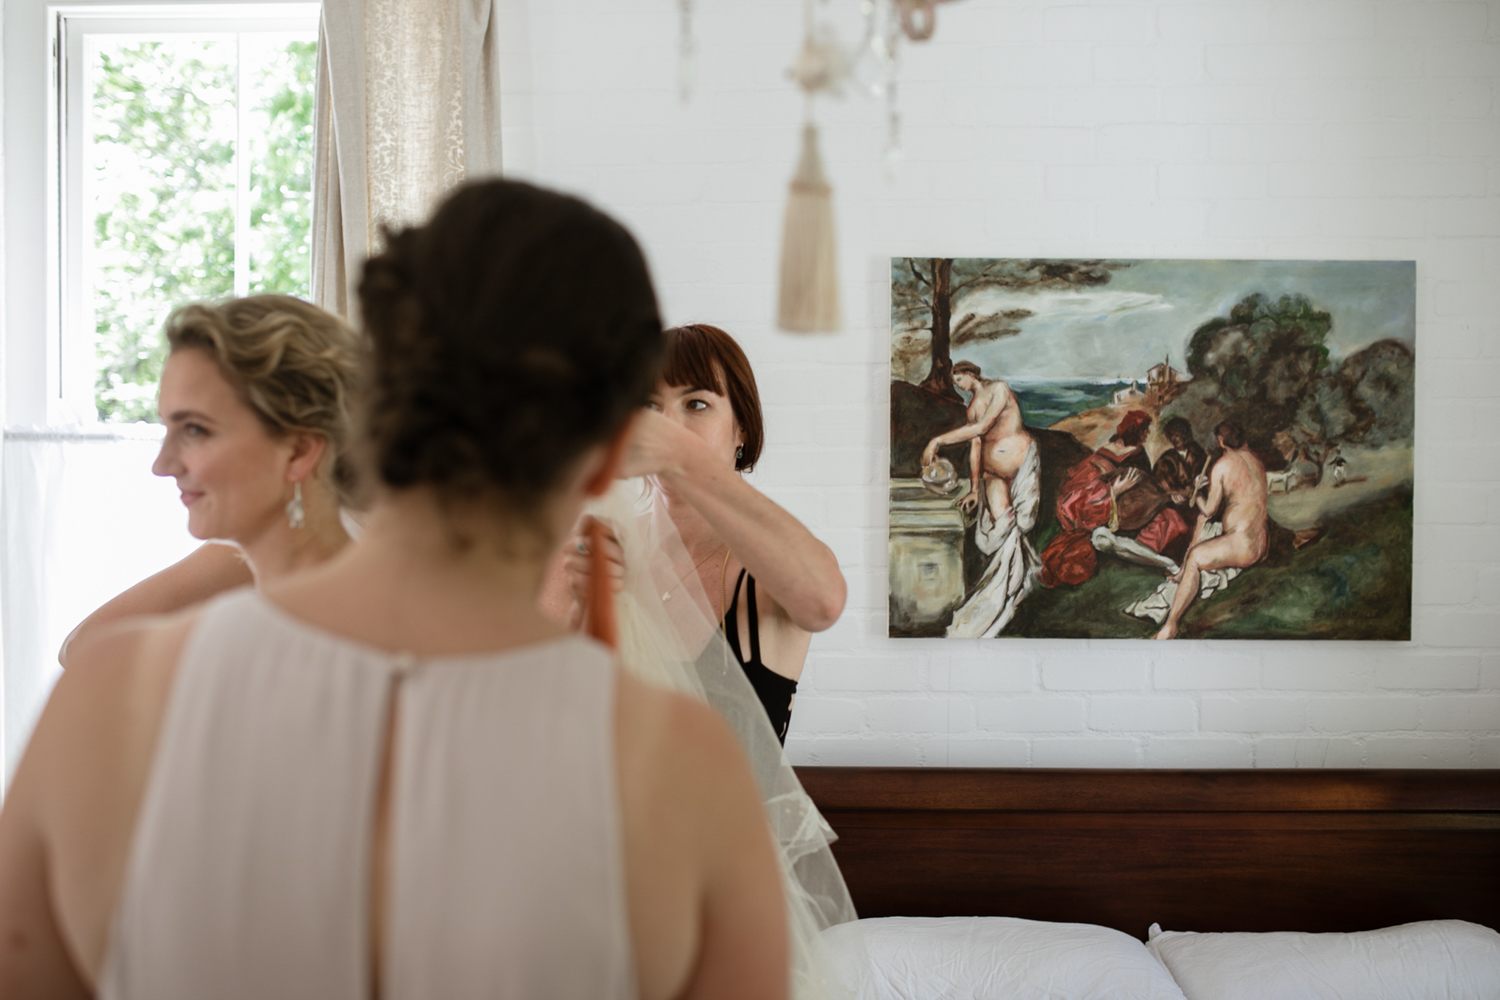 heisvisual-wedding-photographers-documentary-stellenbosch-south-africa008.jpg